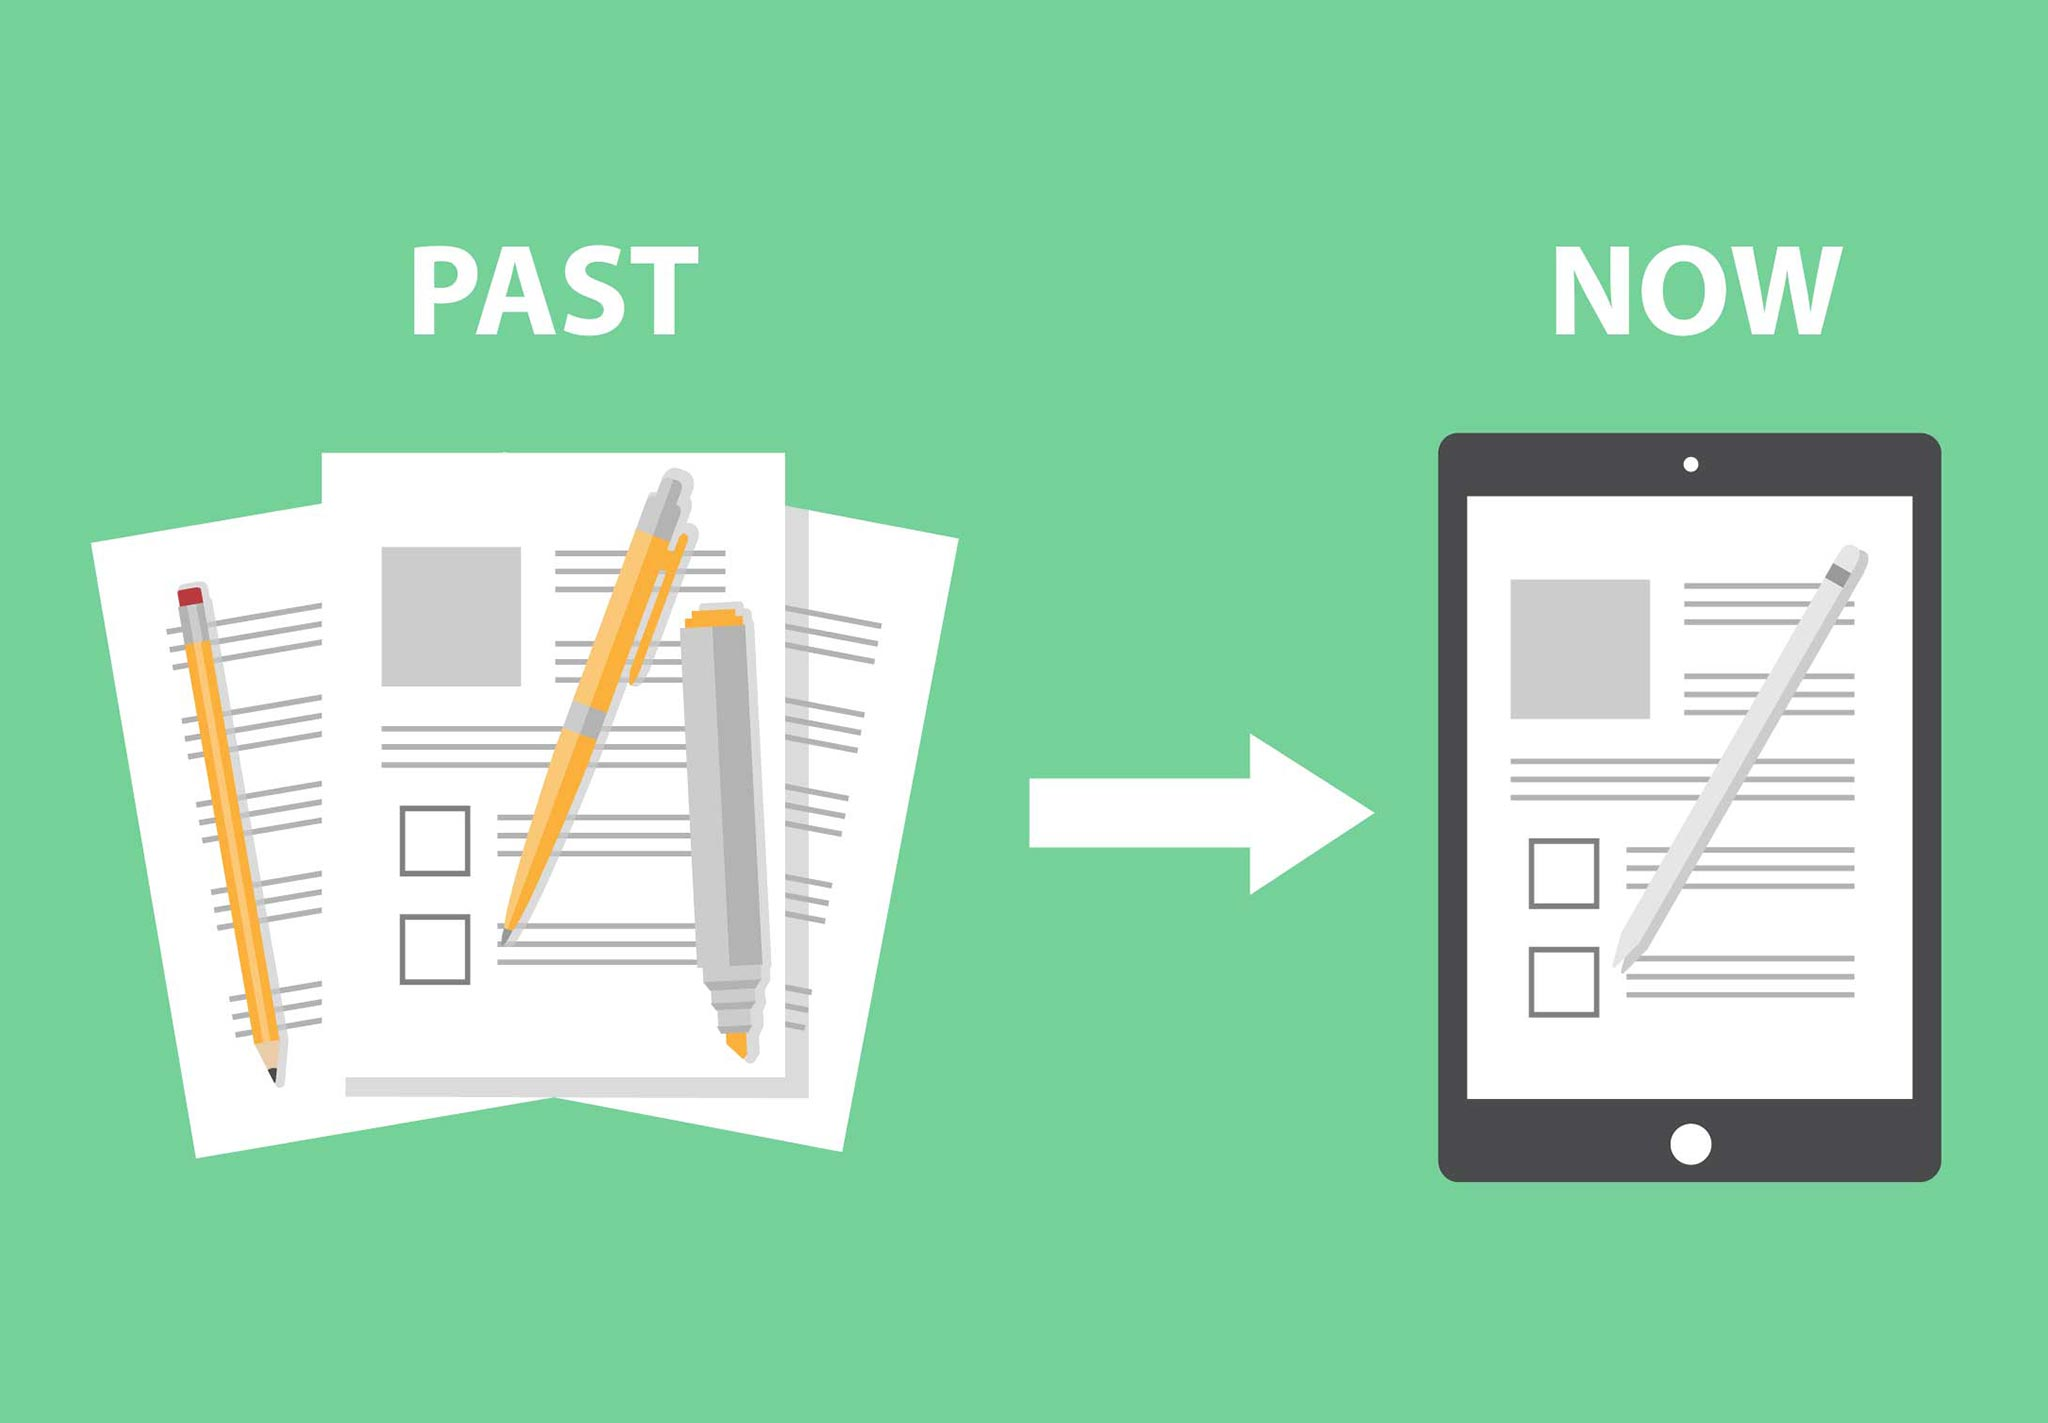 It is Time to Go Paperless with Online Faxing